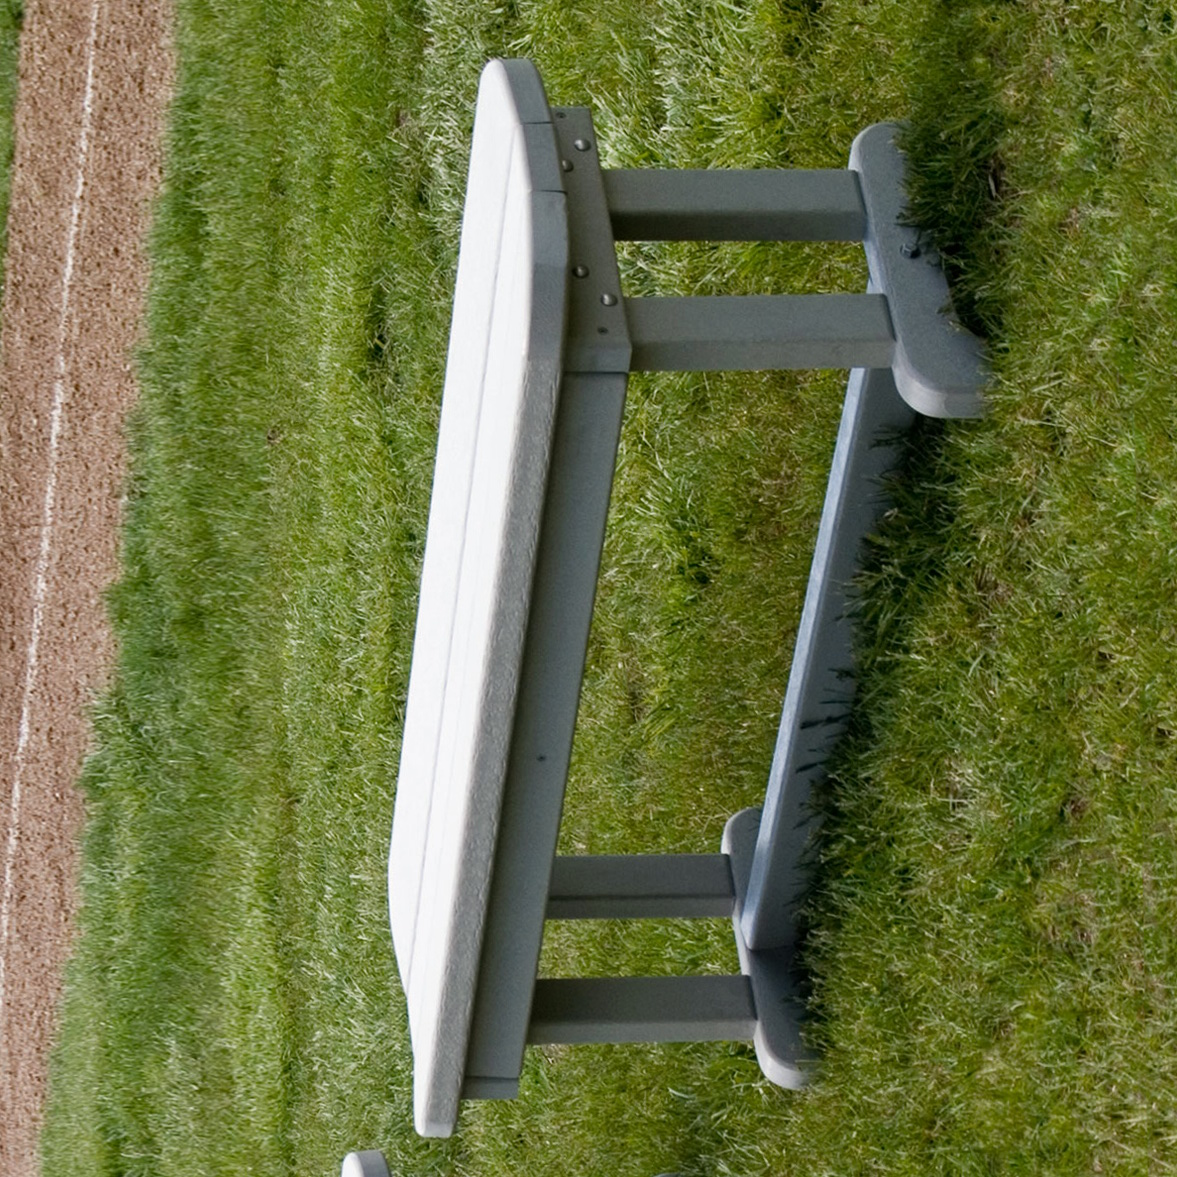 Park Benches For Sale Nz Home Design Ideas